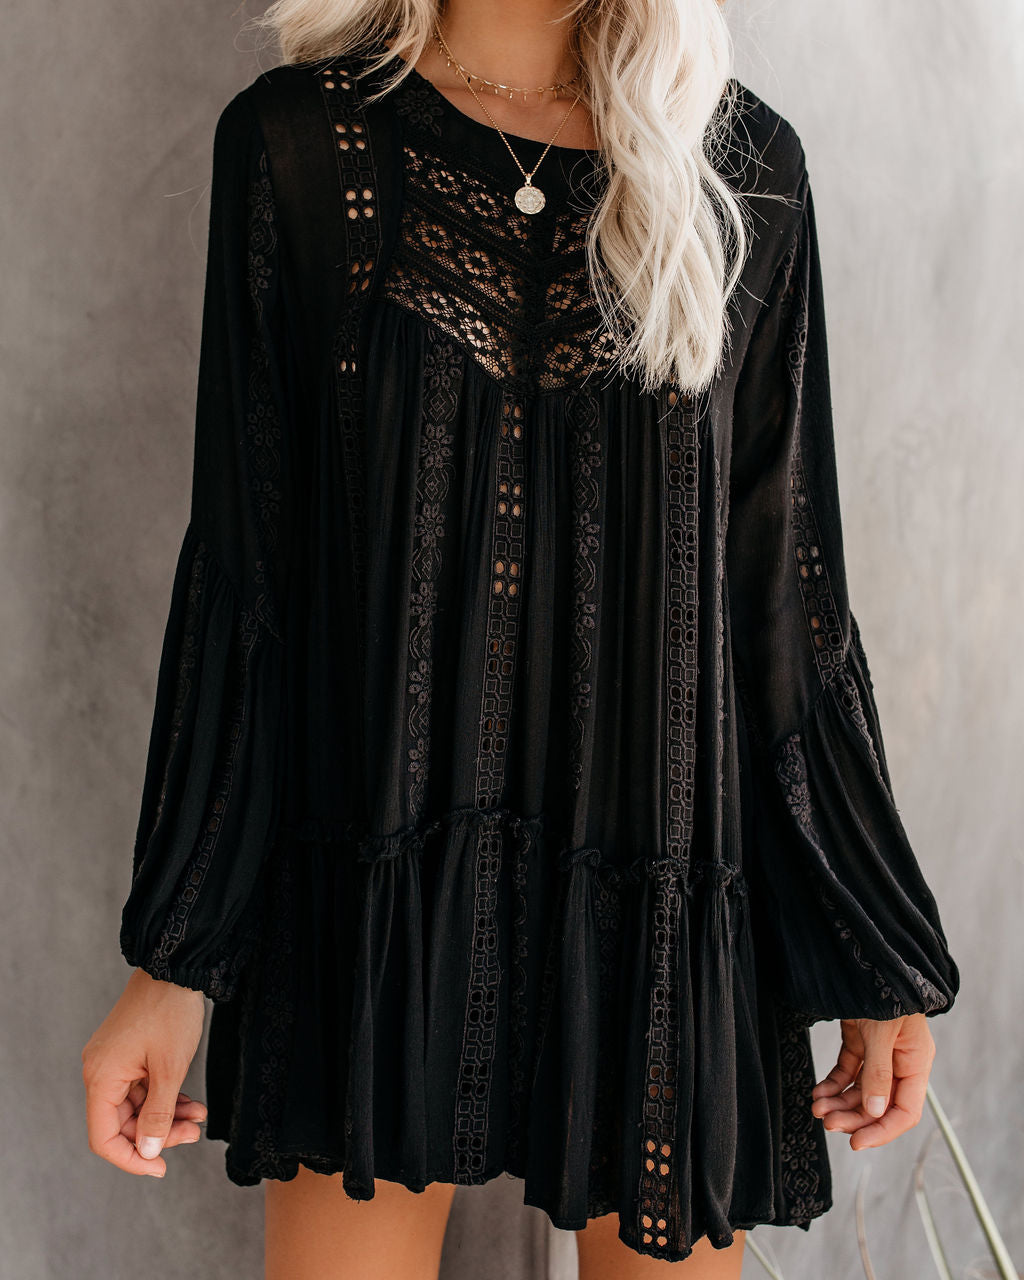 Kiss Kiss Embroidered Lace Tunic - Black - FREE PEOPLE - FINAL SALE